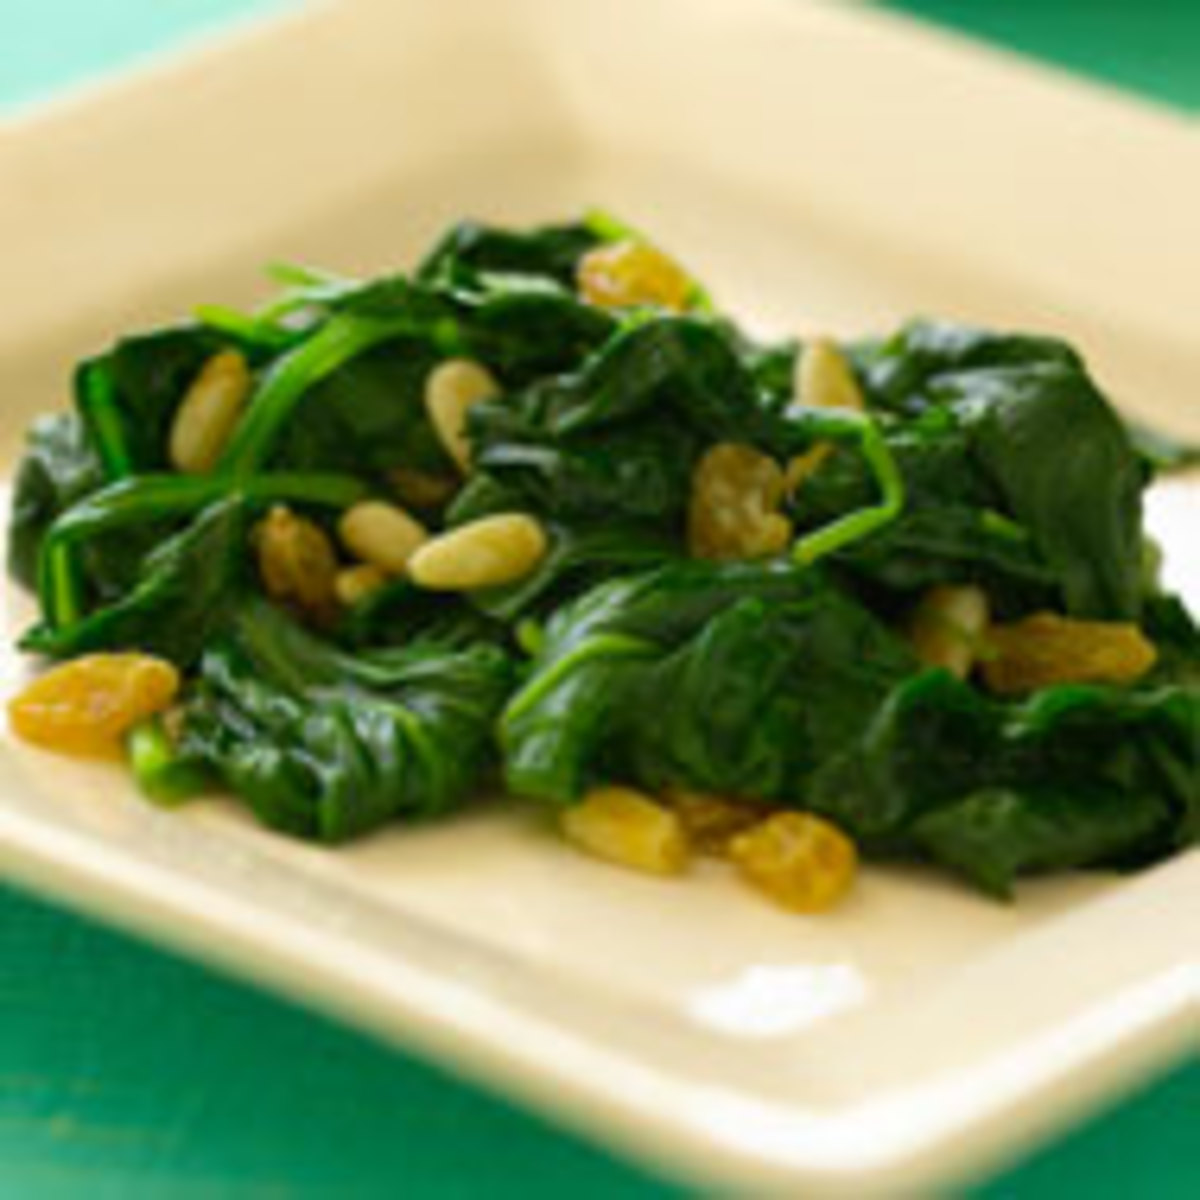 Limas and Spinach